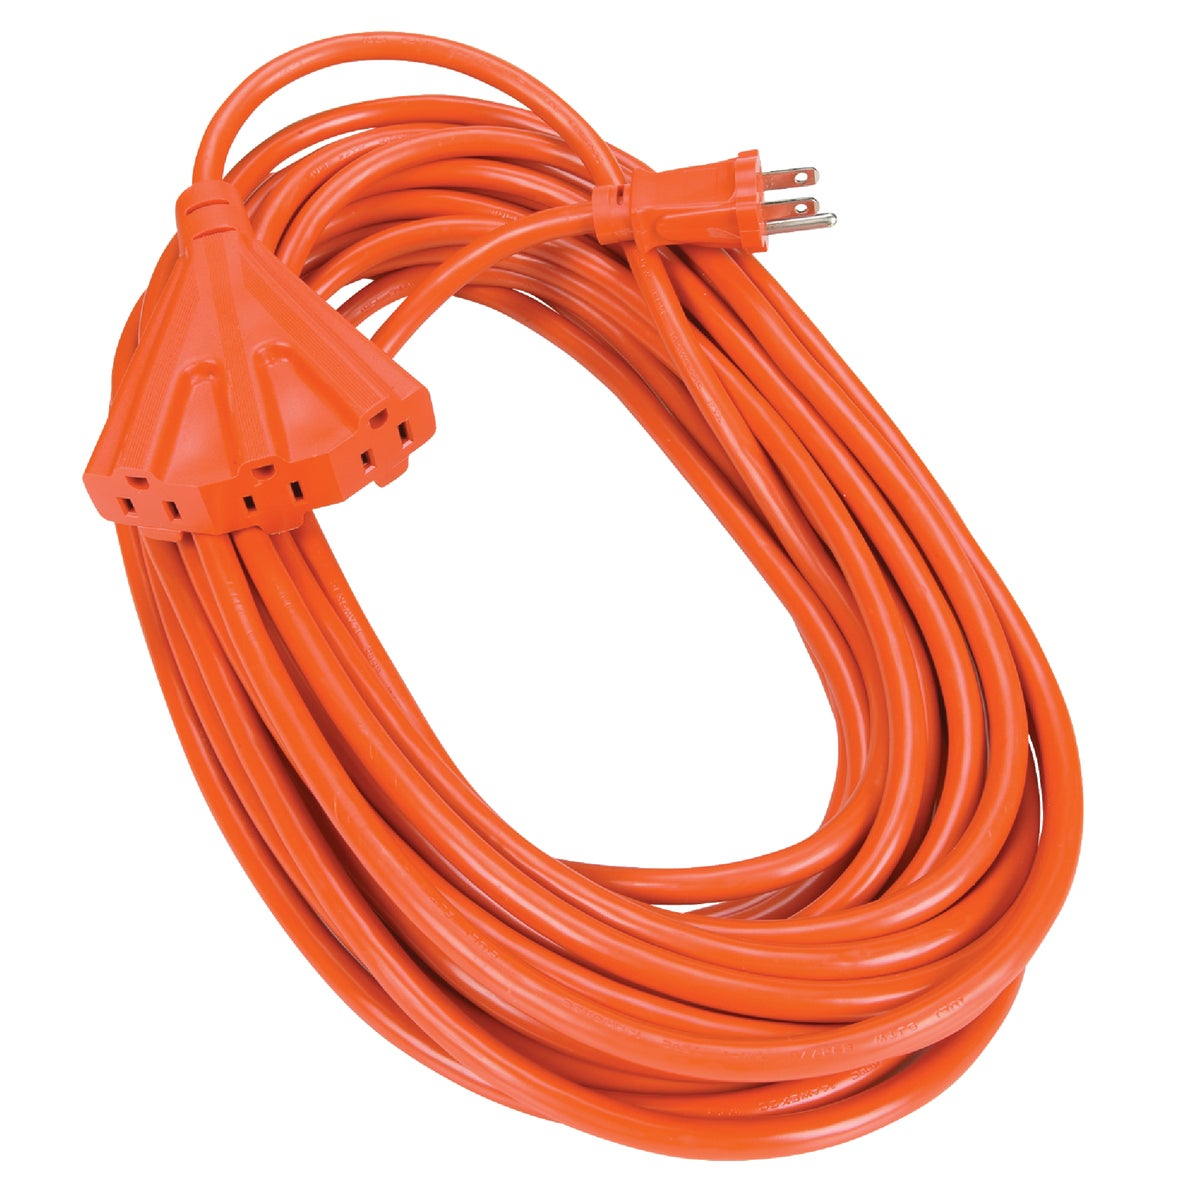 50' 14/3 TRIPLE TAP CORD - 550826 by Coleman Cable Import